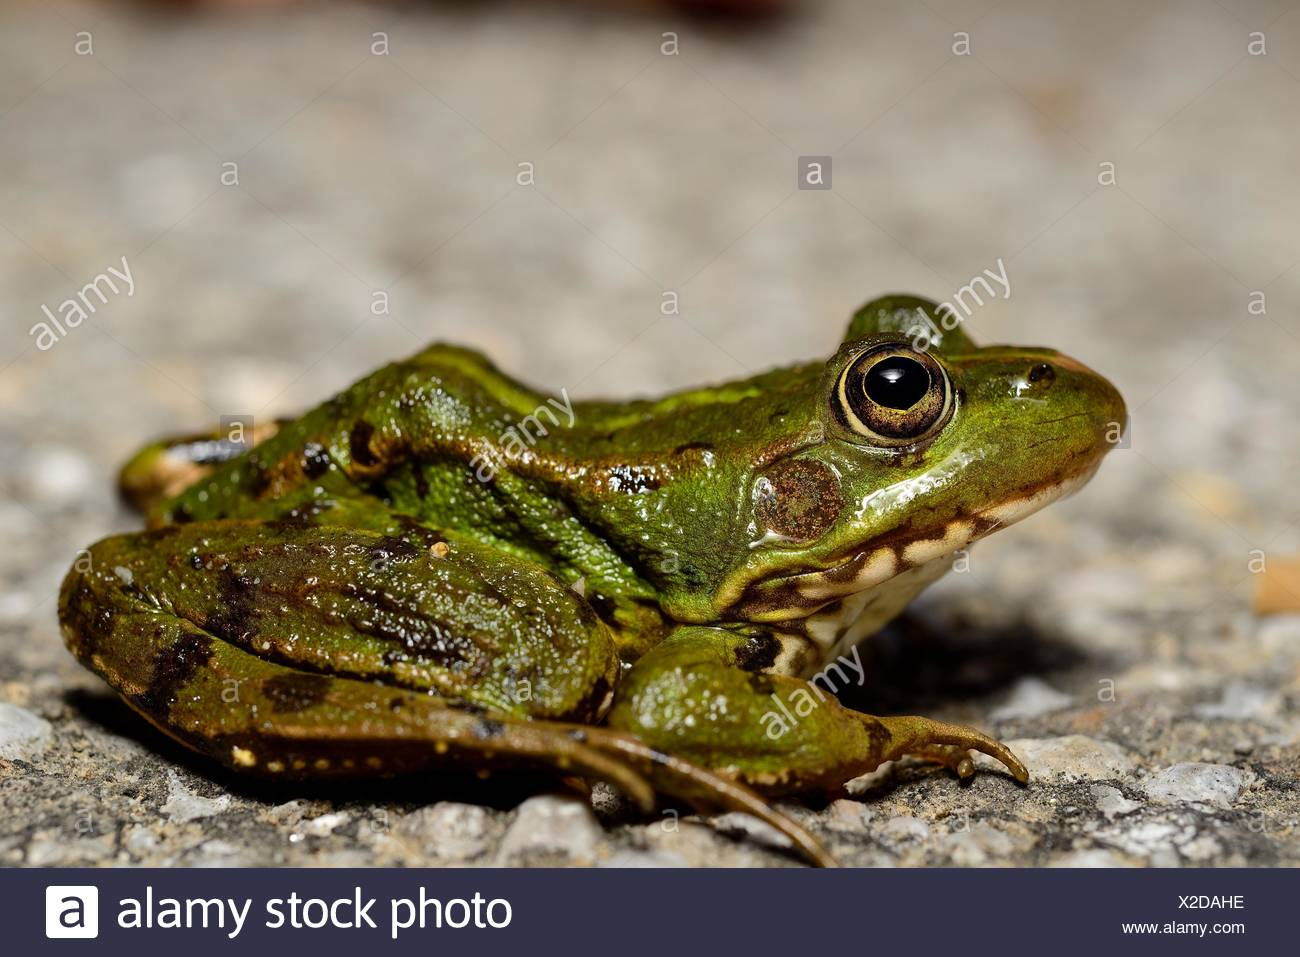 Common green frog (Pelophylax perezi) in a pond of Mouruas, Orense, Spain - Stock Image